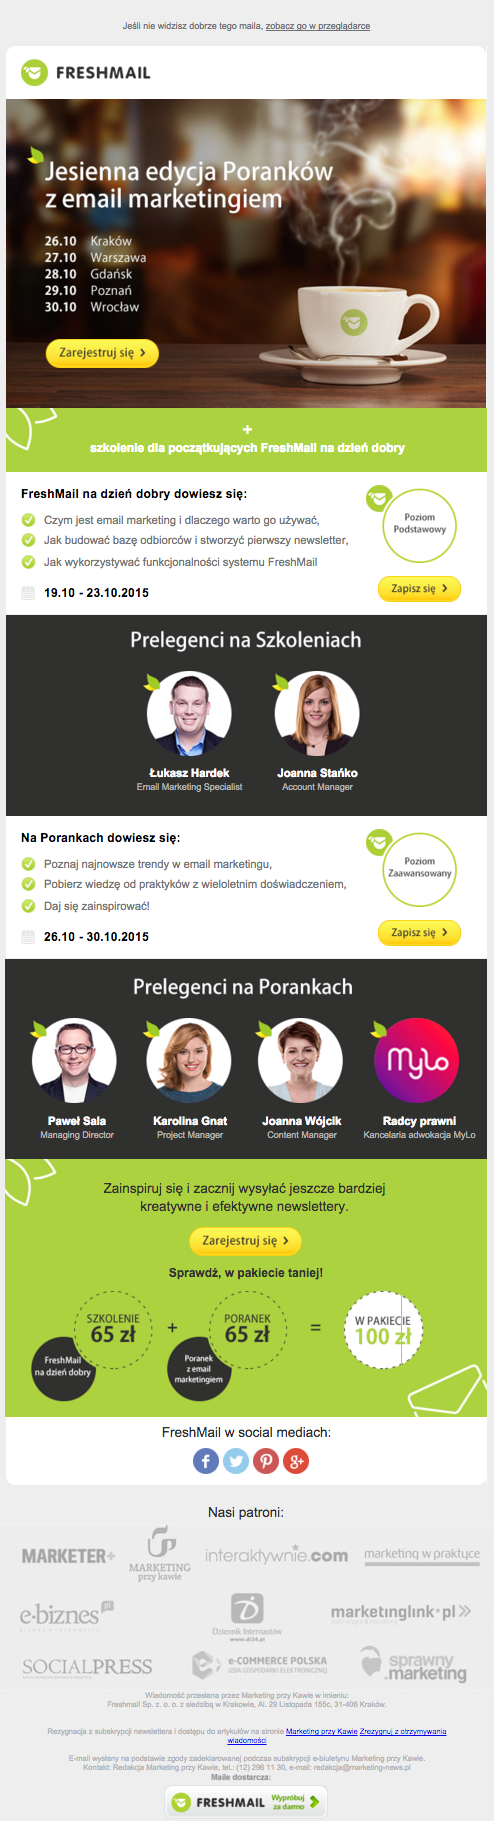 FreshMail, Marketing przy Kawie: mailing Poranki z Email Marketingiem 2015